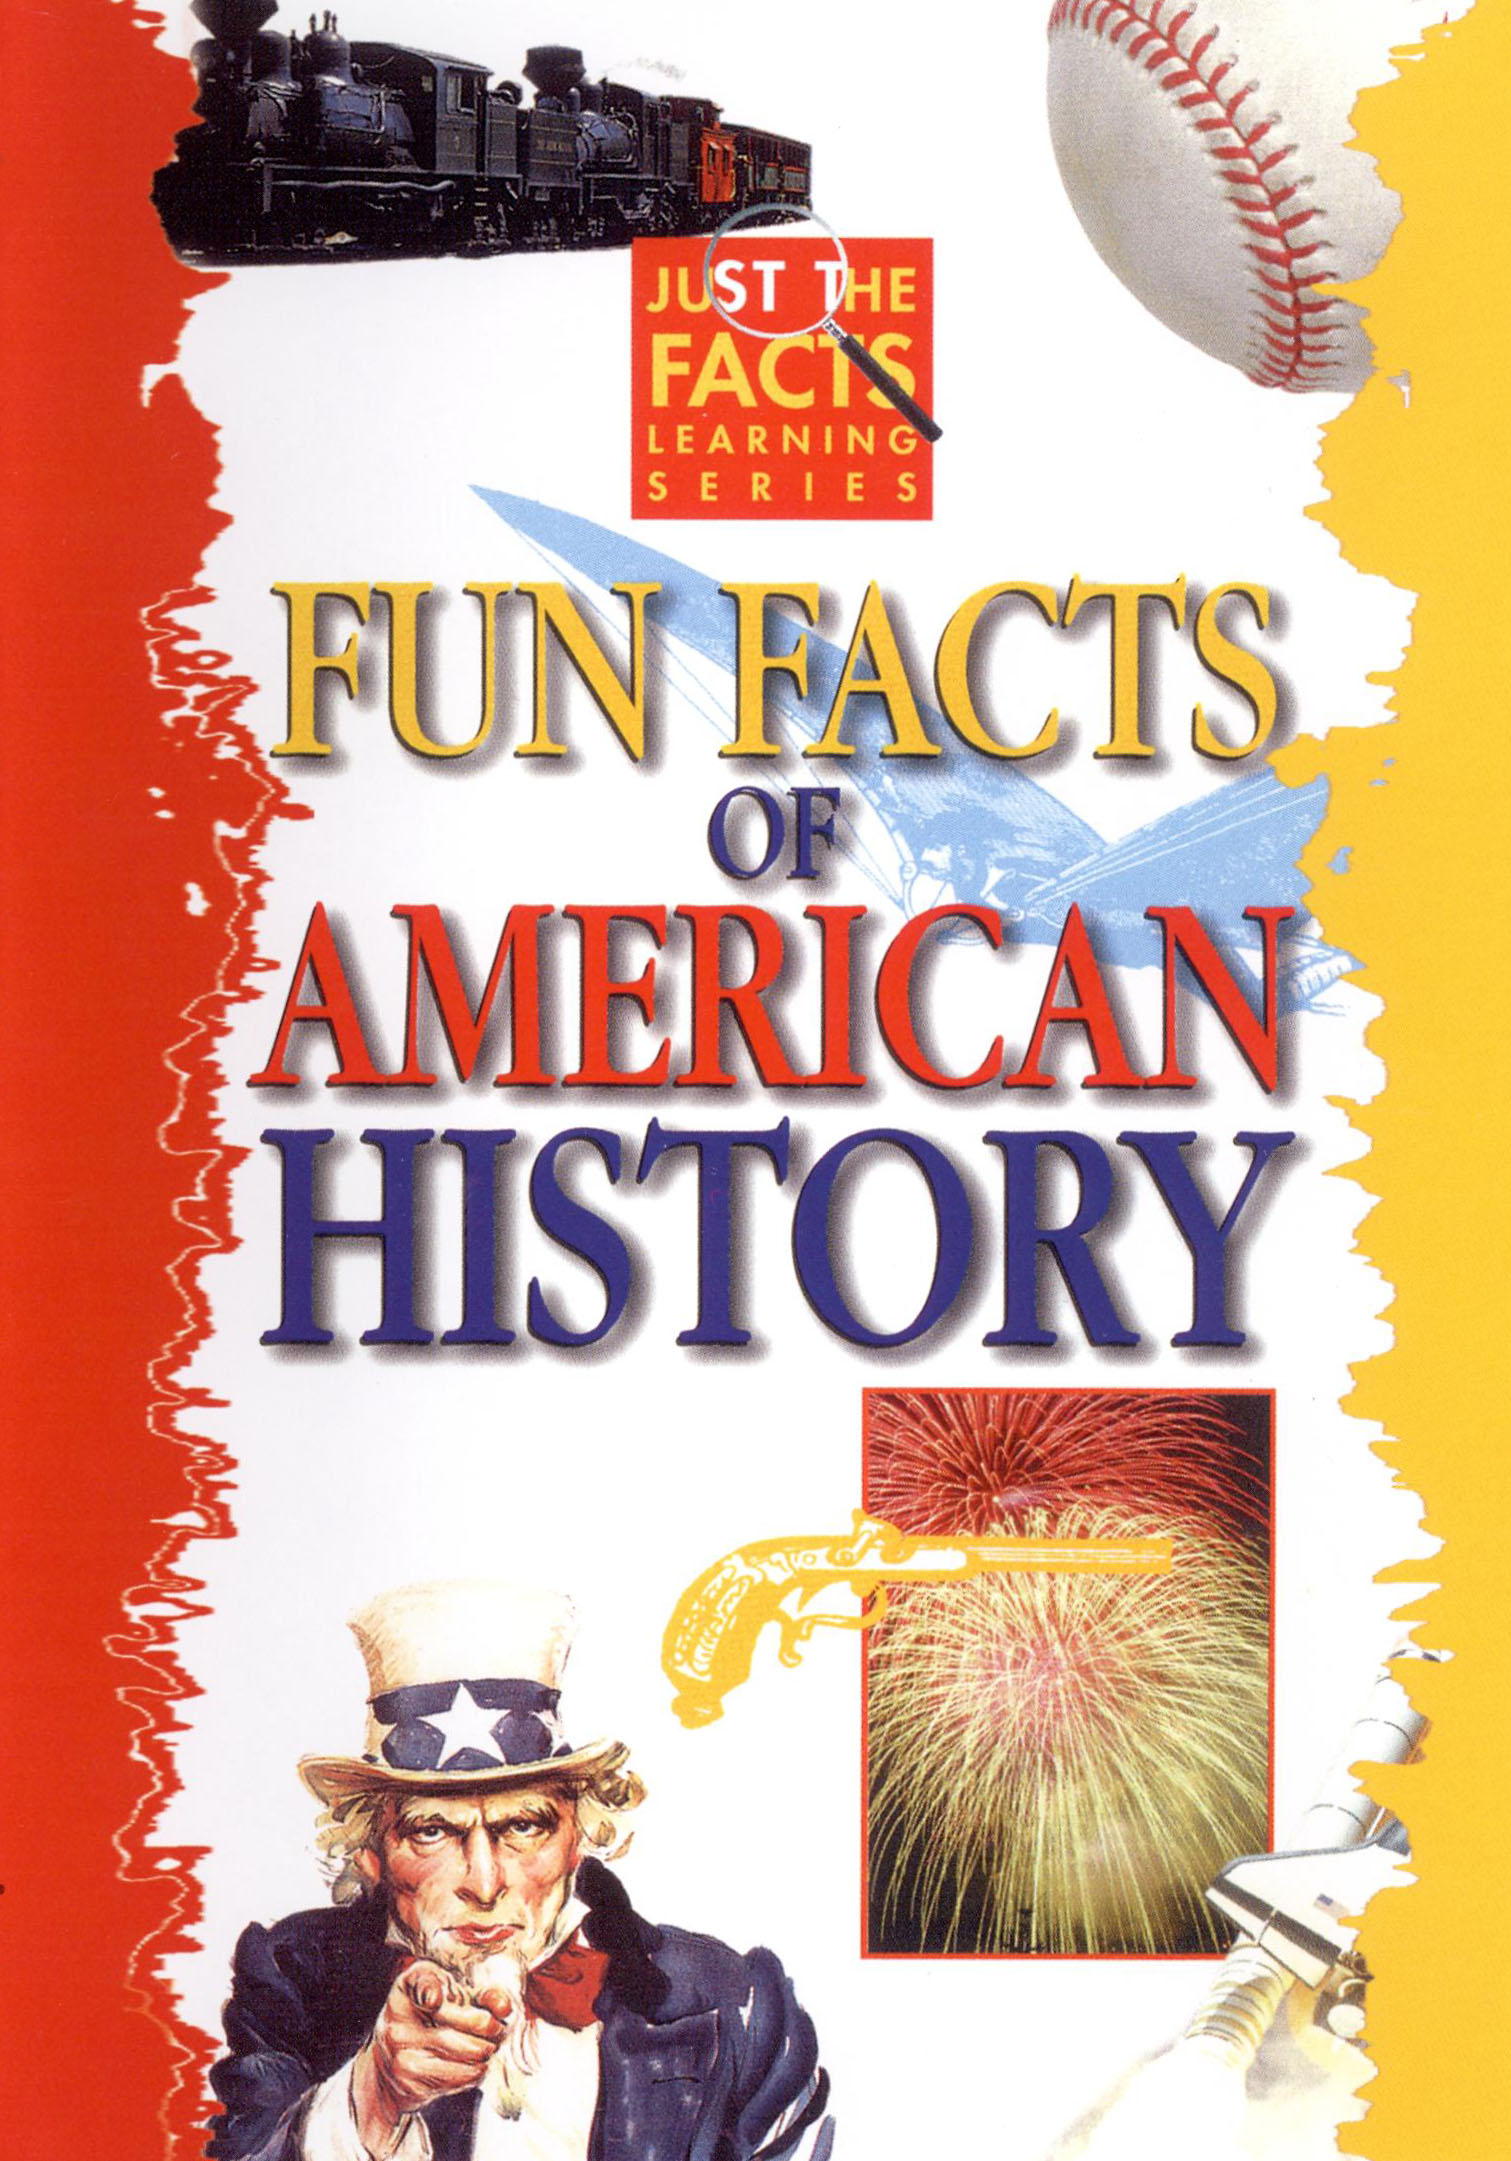 Just the facts fun facts of american history 2007 for American history trivia facts